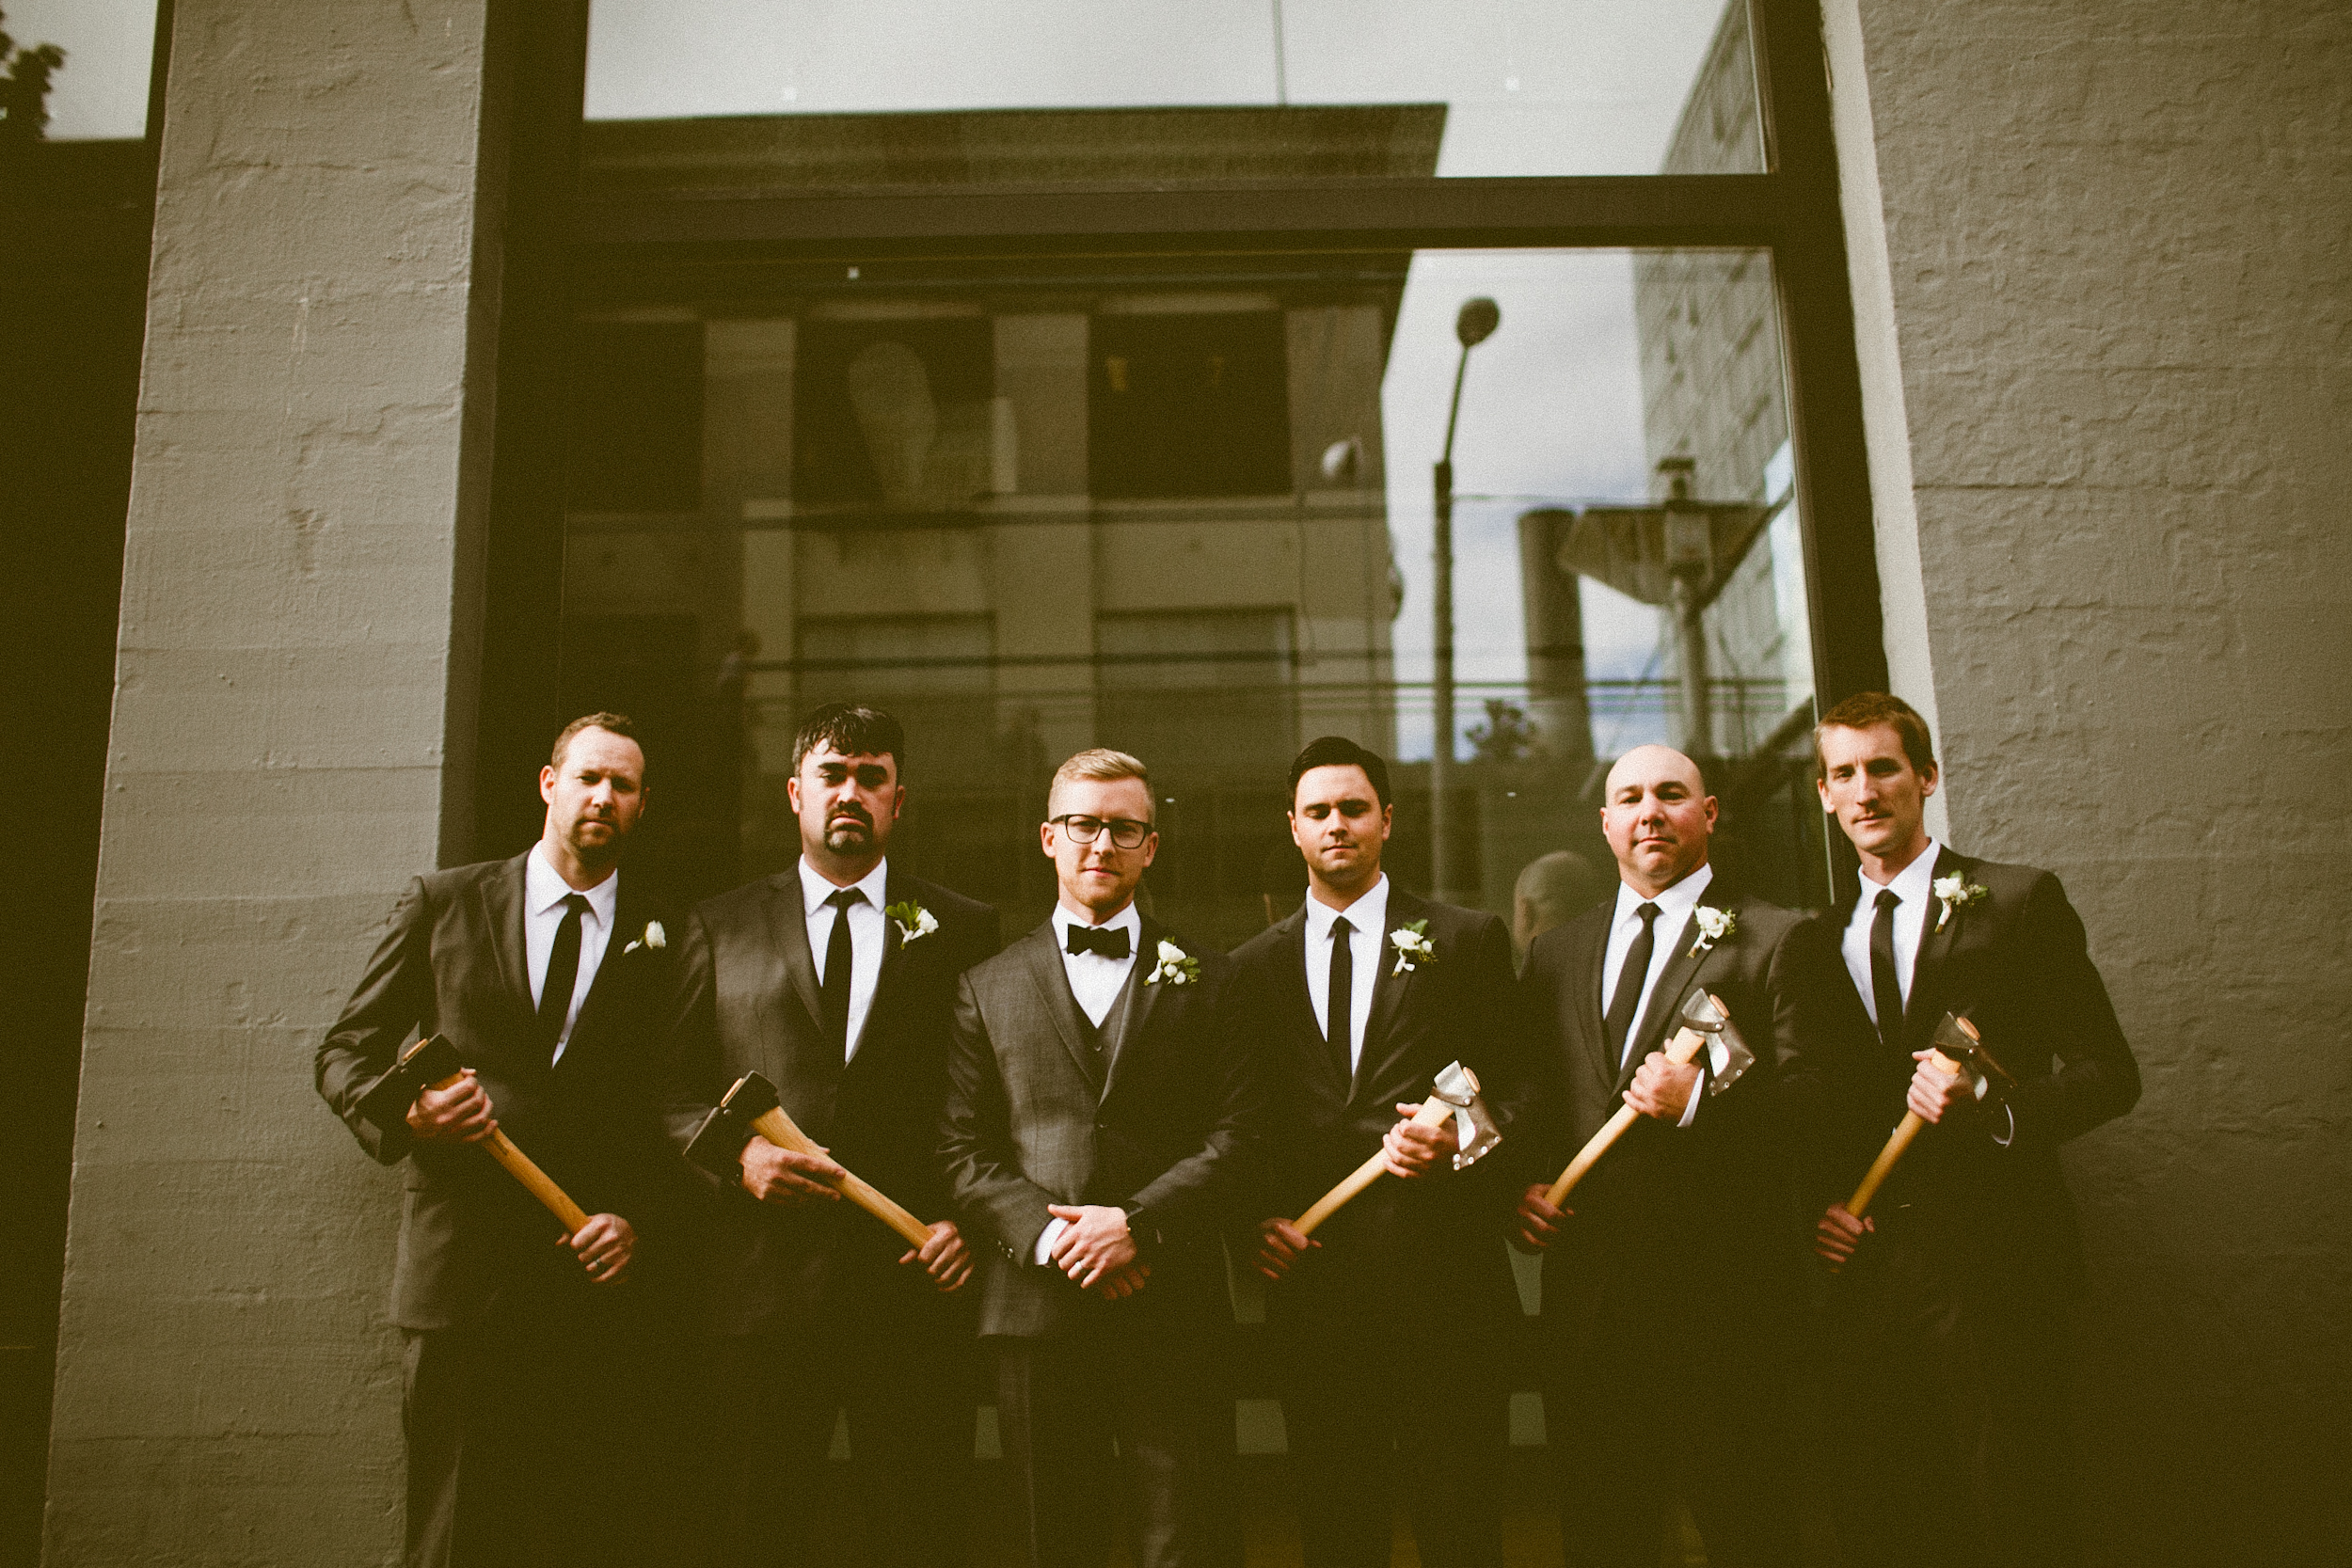 Sodo Park Wedding in Seattle | Groomsmen posing with groom and groomsmen gifts | Perfectly Posh Events, Seattle Wedding Planner | Andria Lindquist Photography